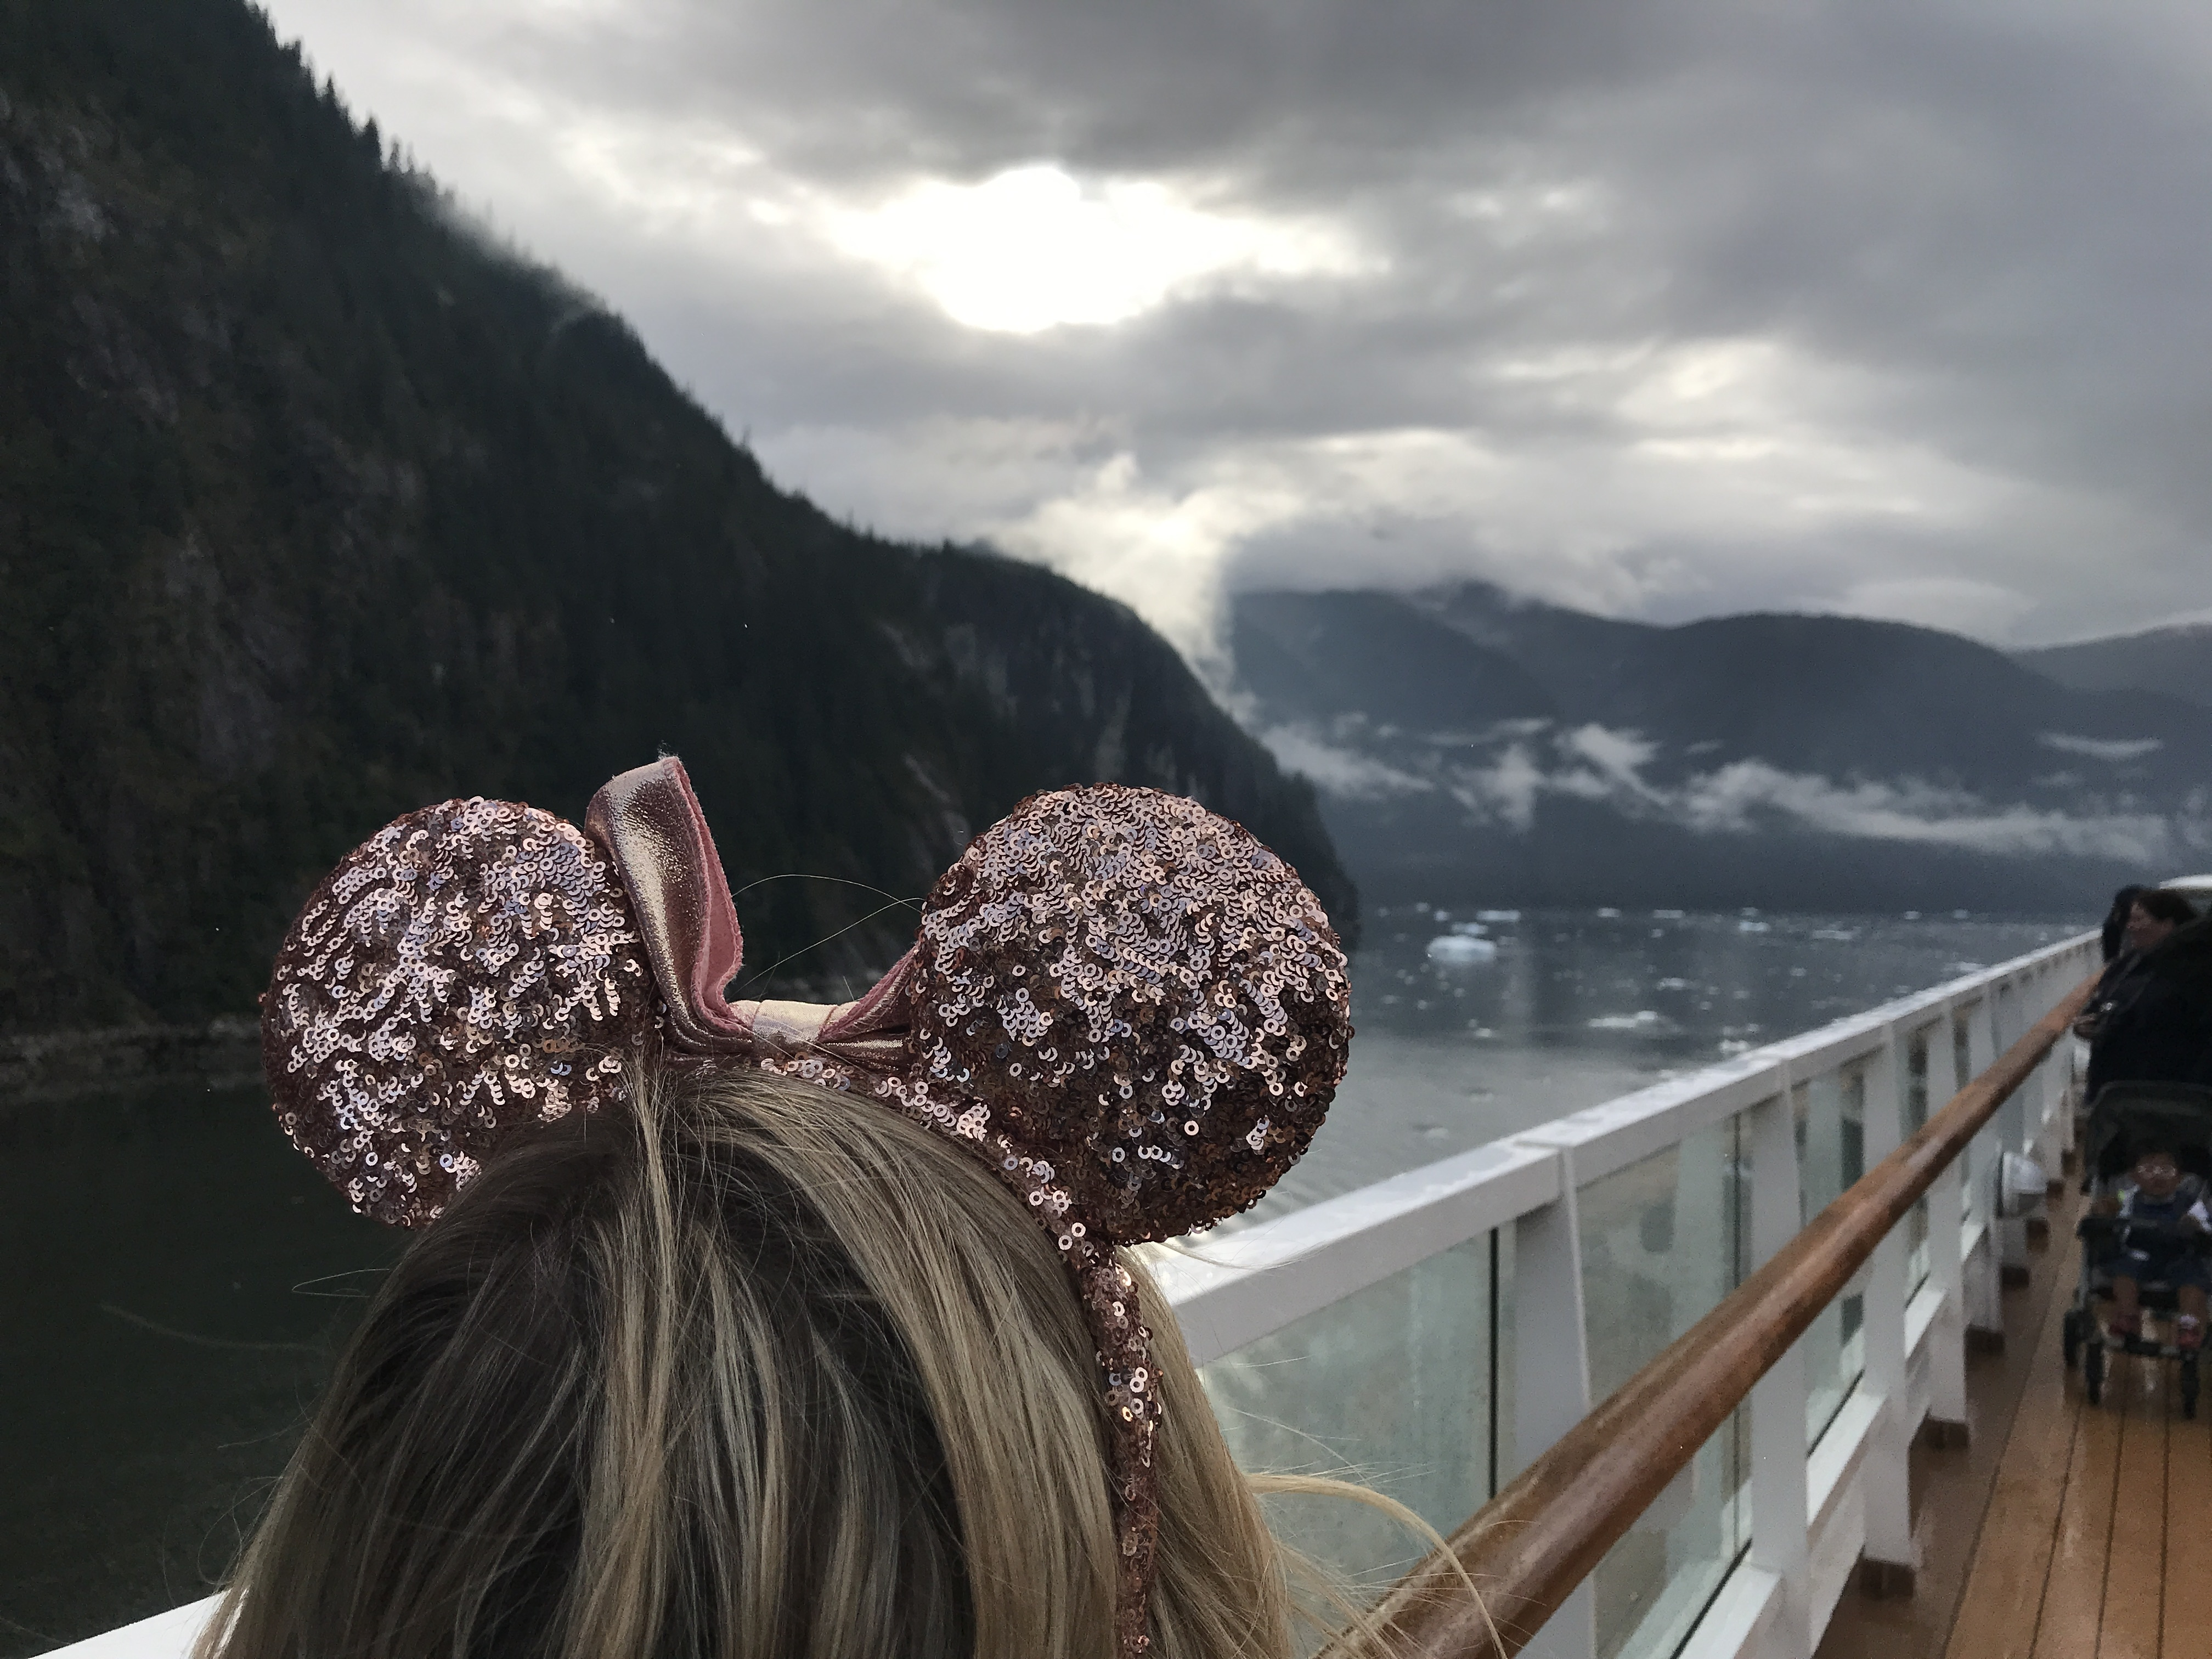 Tracy Arm View Off the Top Deck of the Disney Wonder with Oh My Disney Host wearing Minnie Ears